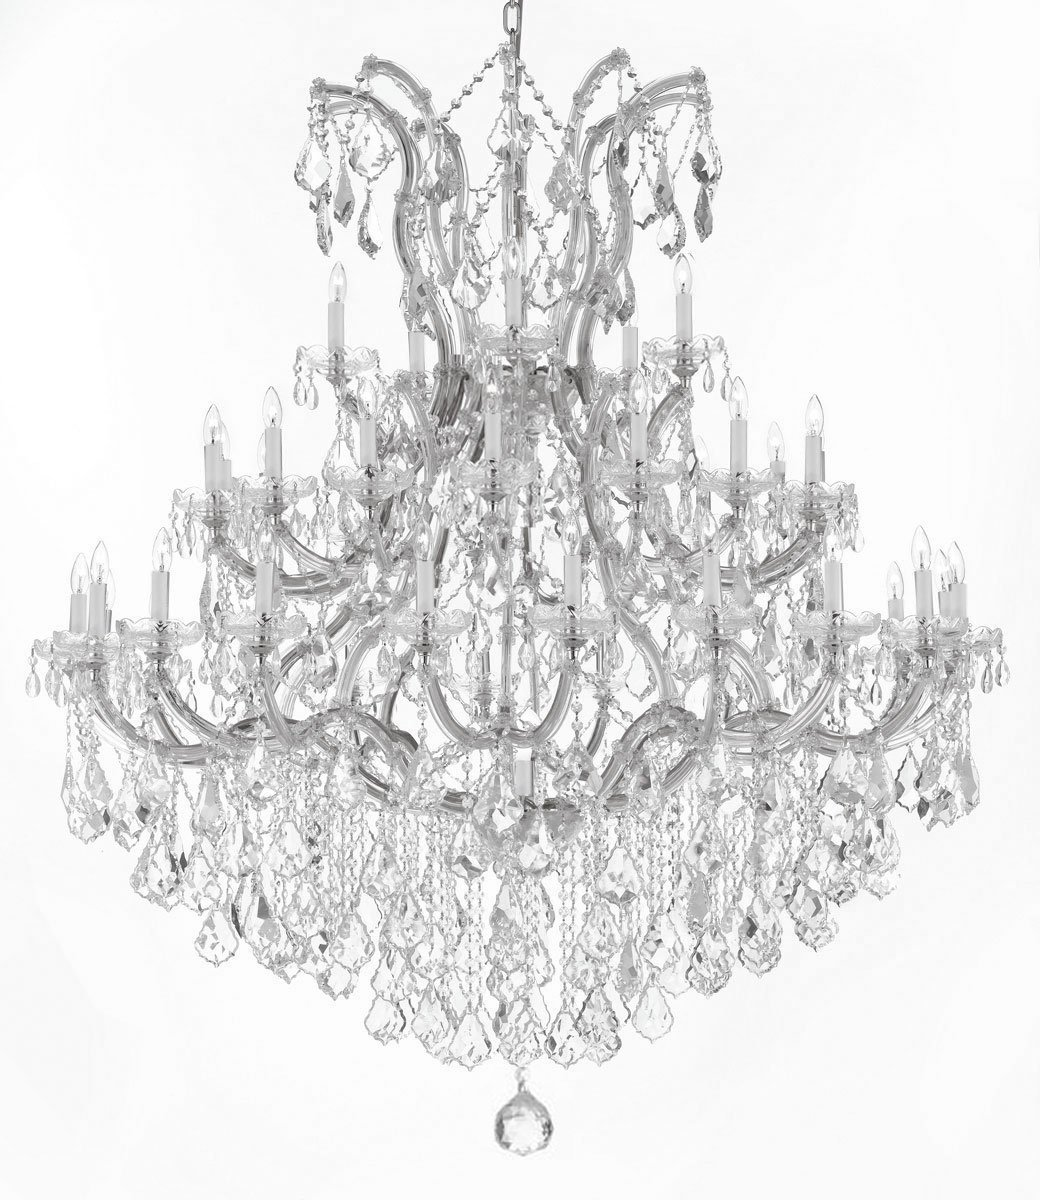 Swarovski crystal trimmed chandelier large foyer entryway maria swarovski crystal trimmed chandelier large foyer entryway maria theresa crystal chandelier chandeliers lighting h 60 w 52 amazon arubaitofo Choice Image